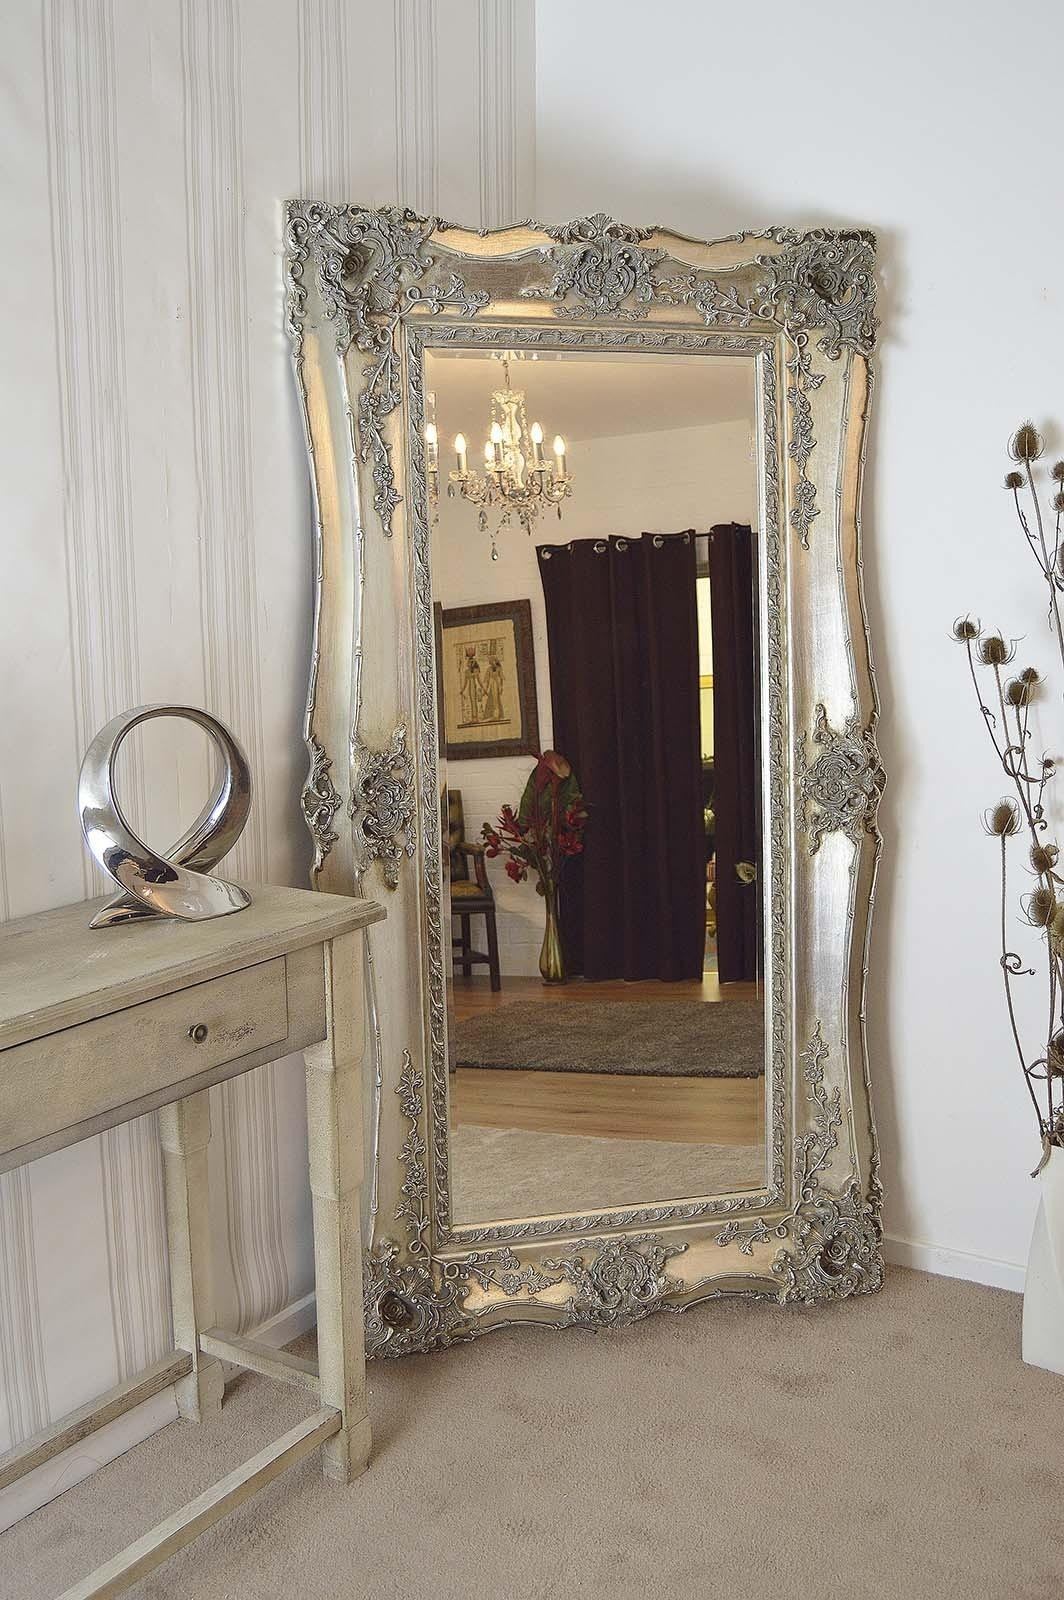 Homeware: Oval Full Length Standing Mirror | Large Floor Mirrors Within Large Long Mirror (Image 14 of 20)